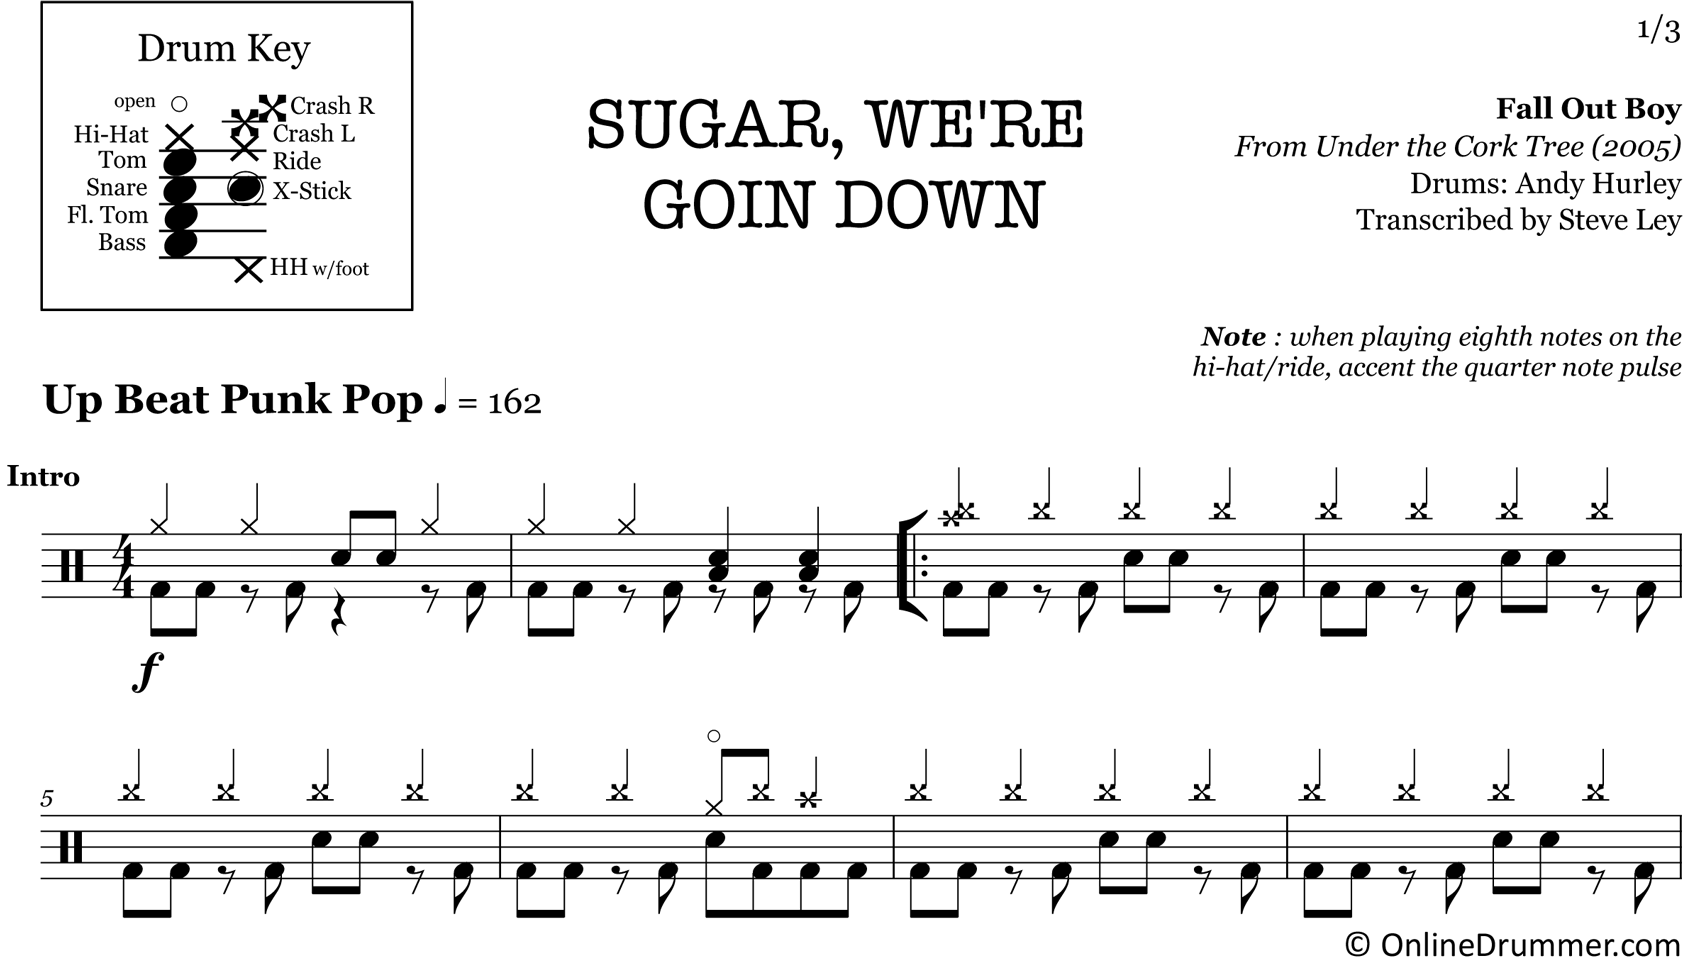 Sugar, We're Goin' Down - Fall Out Boy - Drum Sheet Music